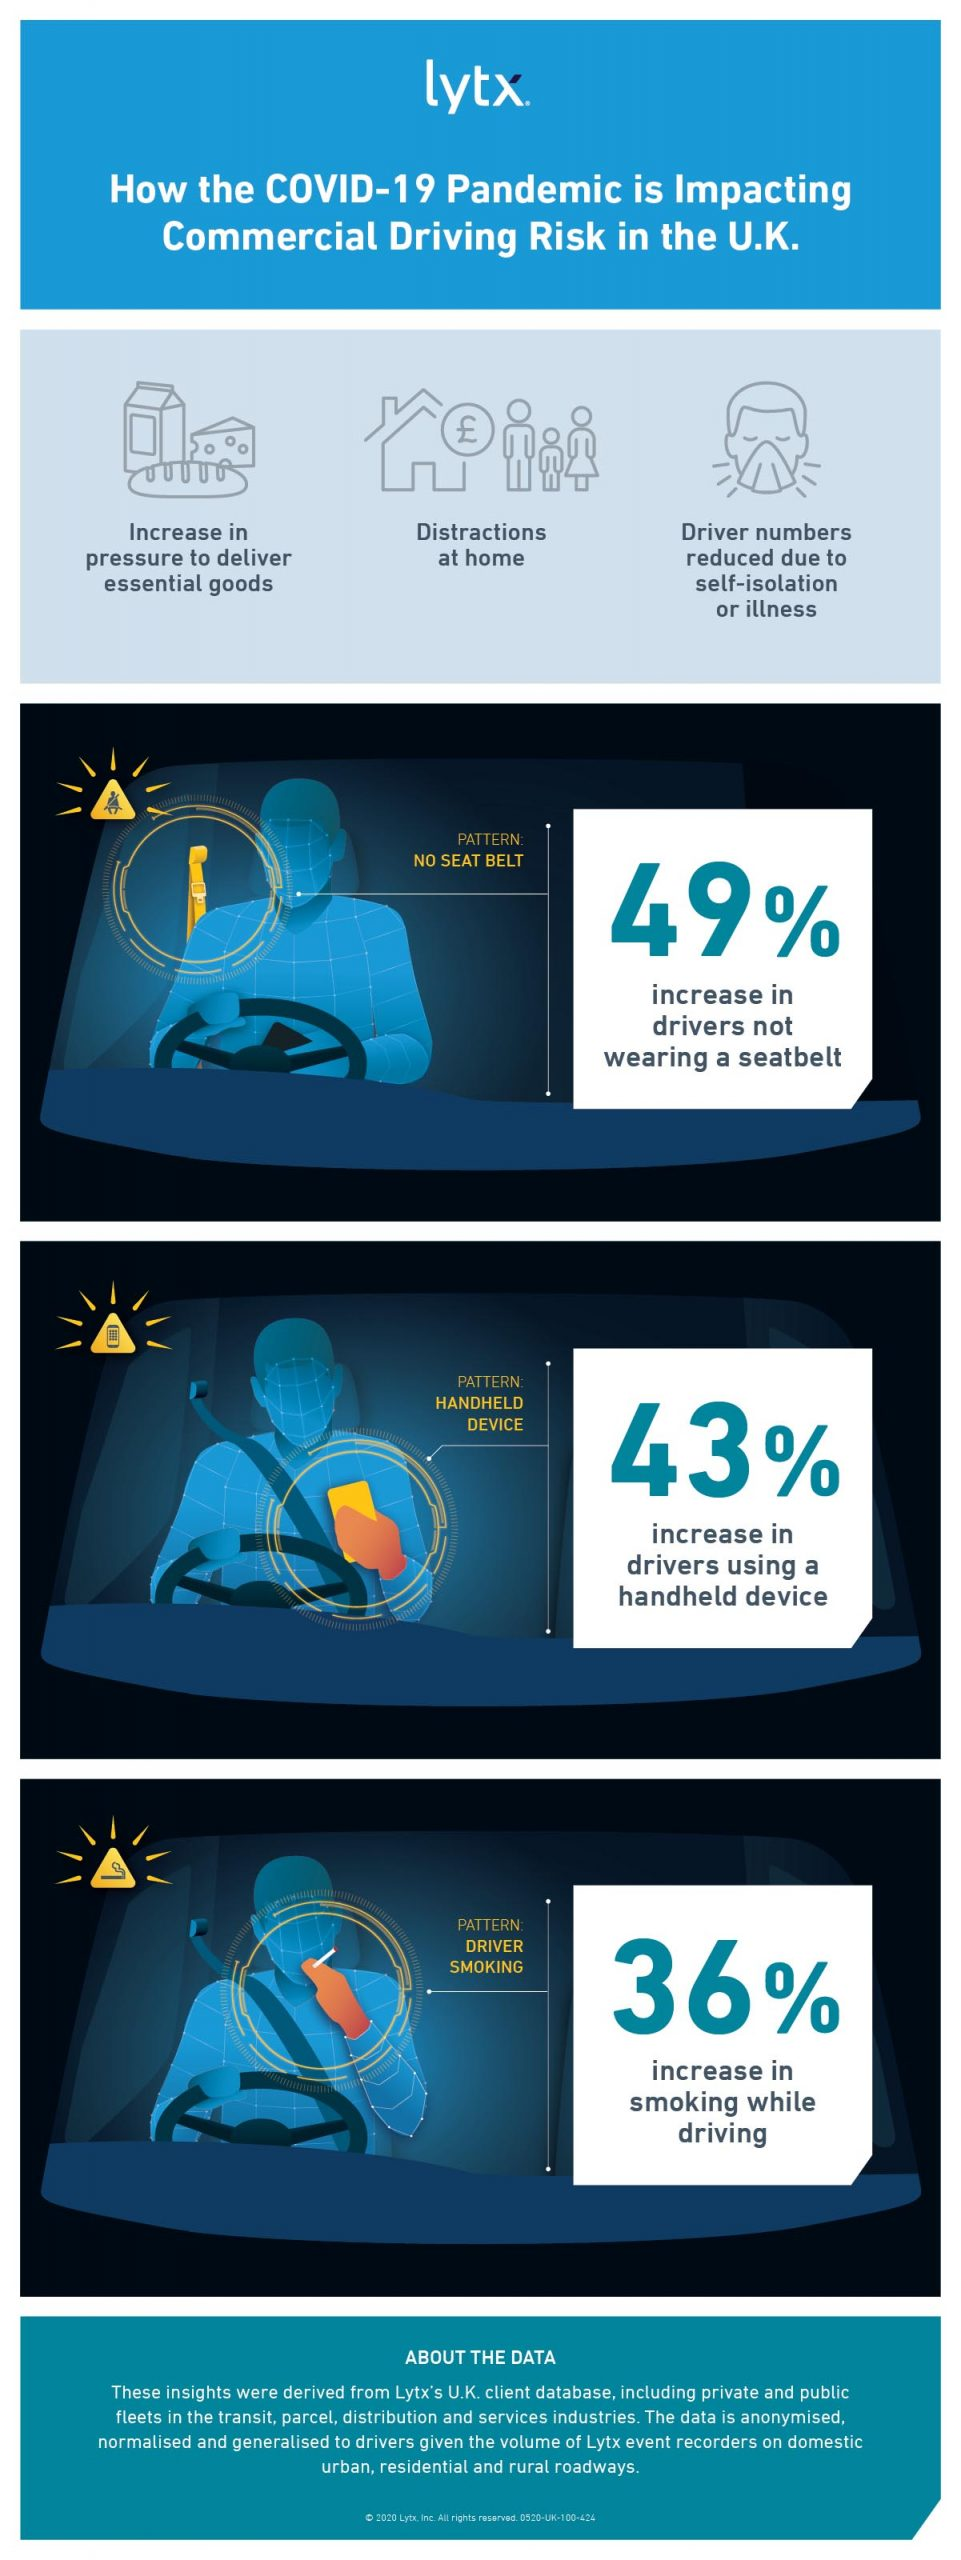 Lytx infographic showing percentage increases in driver risks